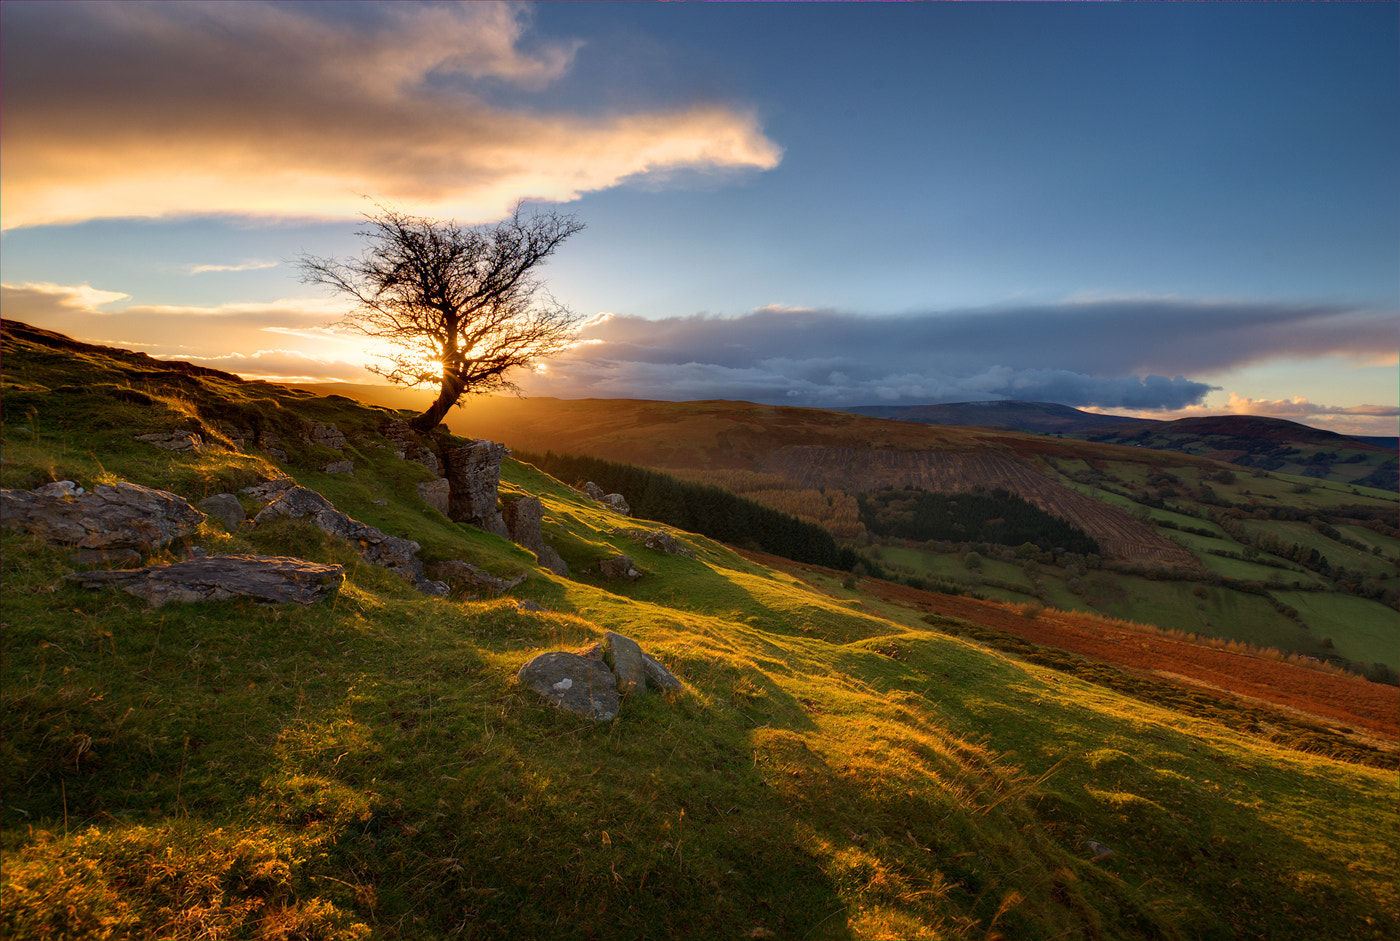 Photograph Windy Ridge Sunset by Gary Howells on 500px